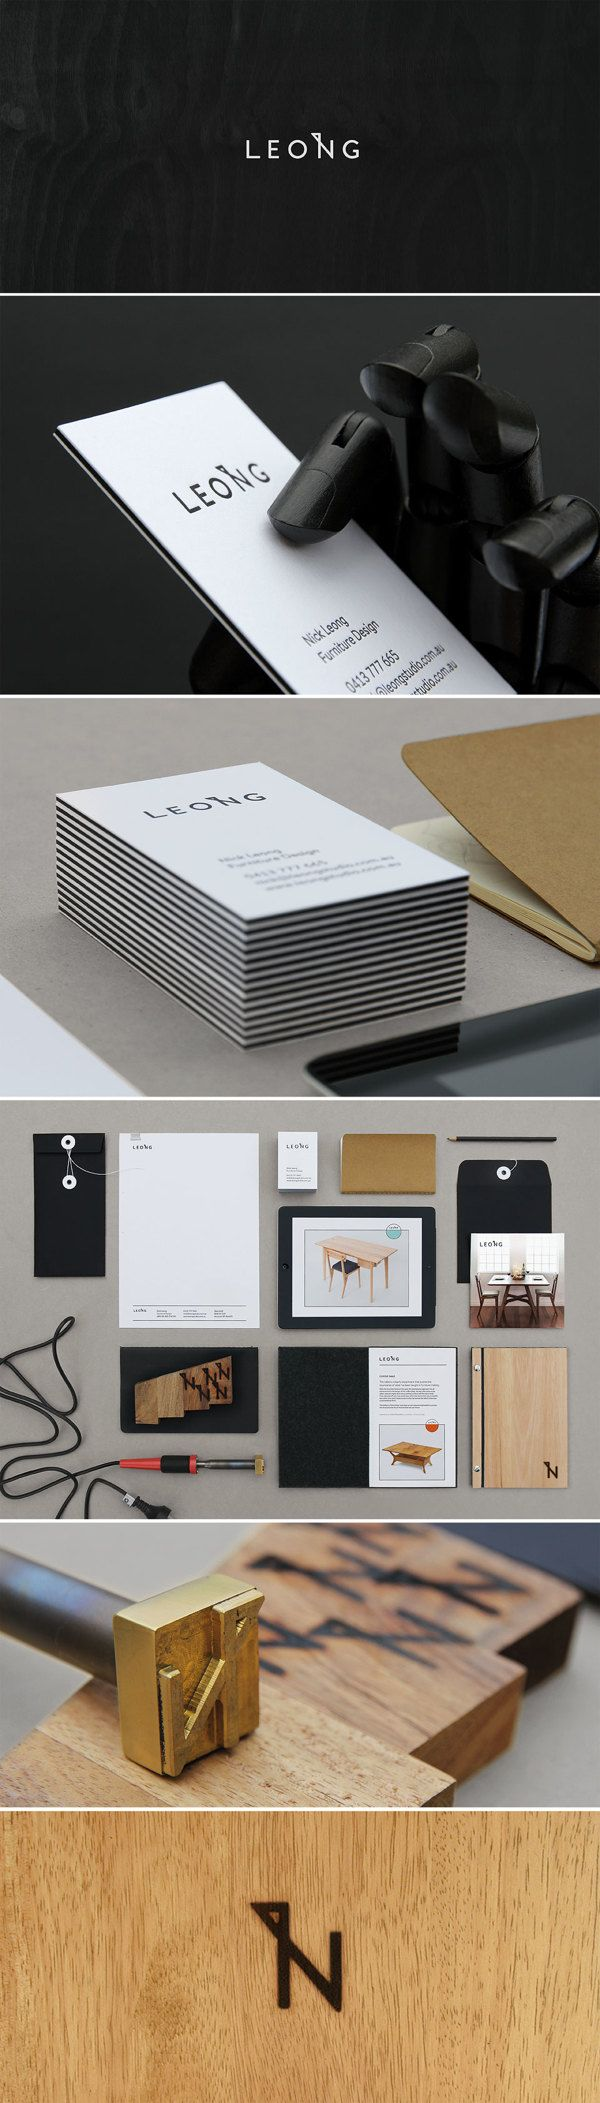 Identity for Furniture Designer Nick Leong by Sarah Bürvenich, via Behance